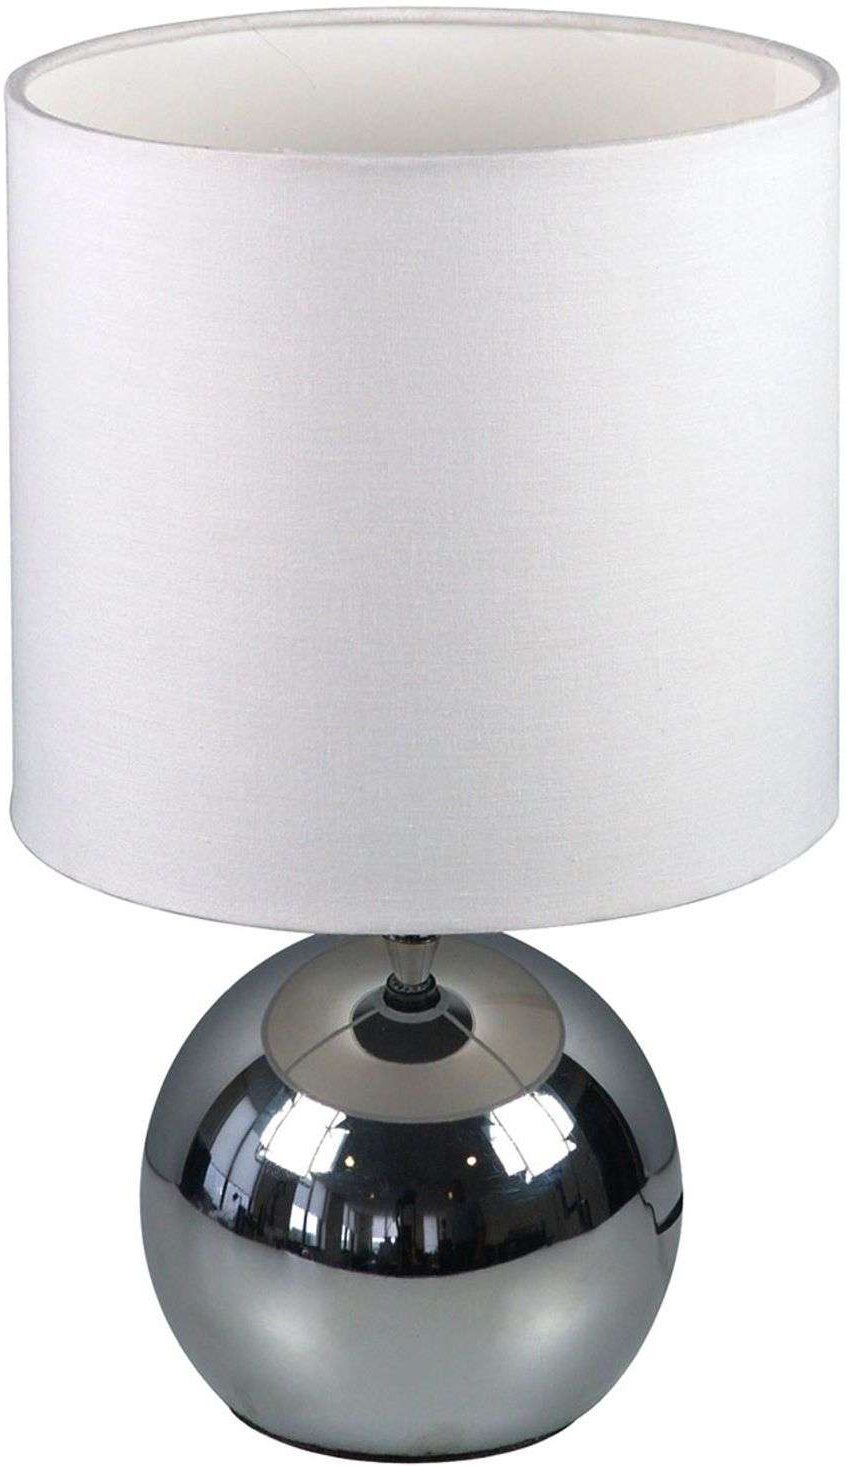 White fabric table lamp Noa with spherical base